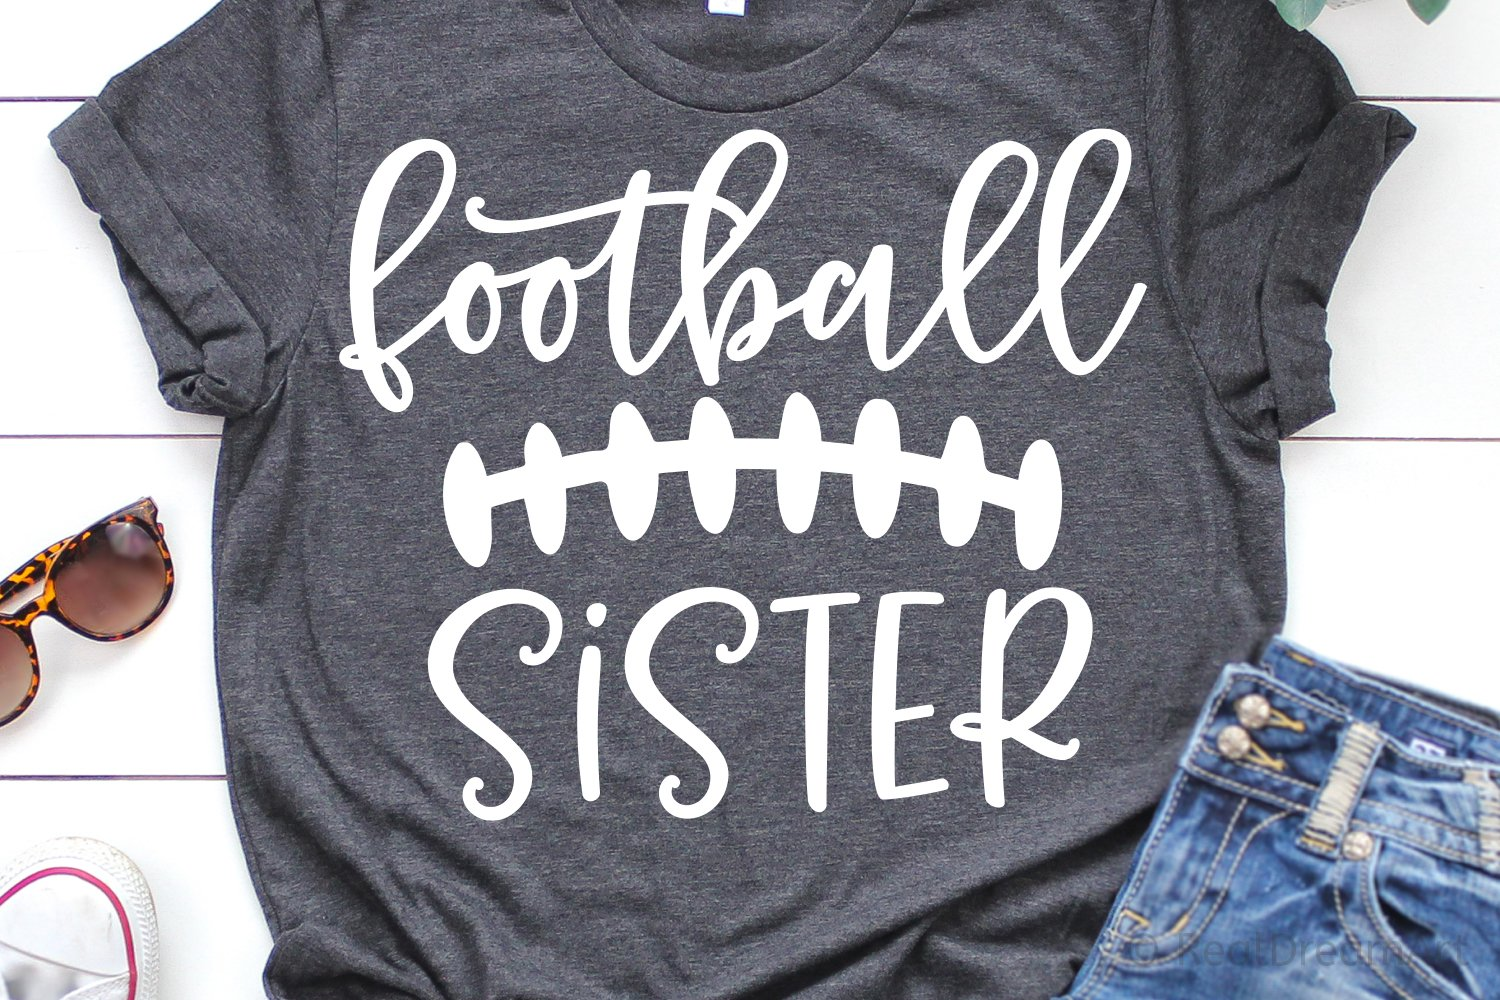 Football Sister Svg Dxf Png Eps Files For Cutting 324958 Svgs Design Bundles